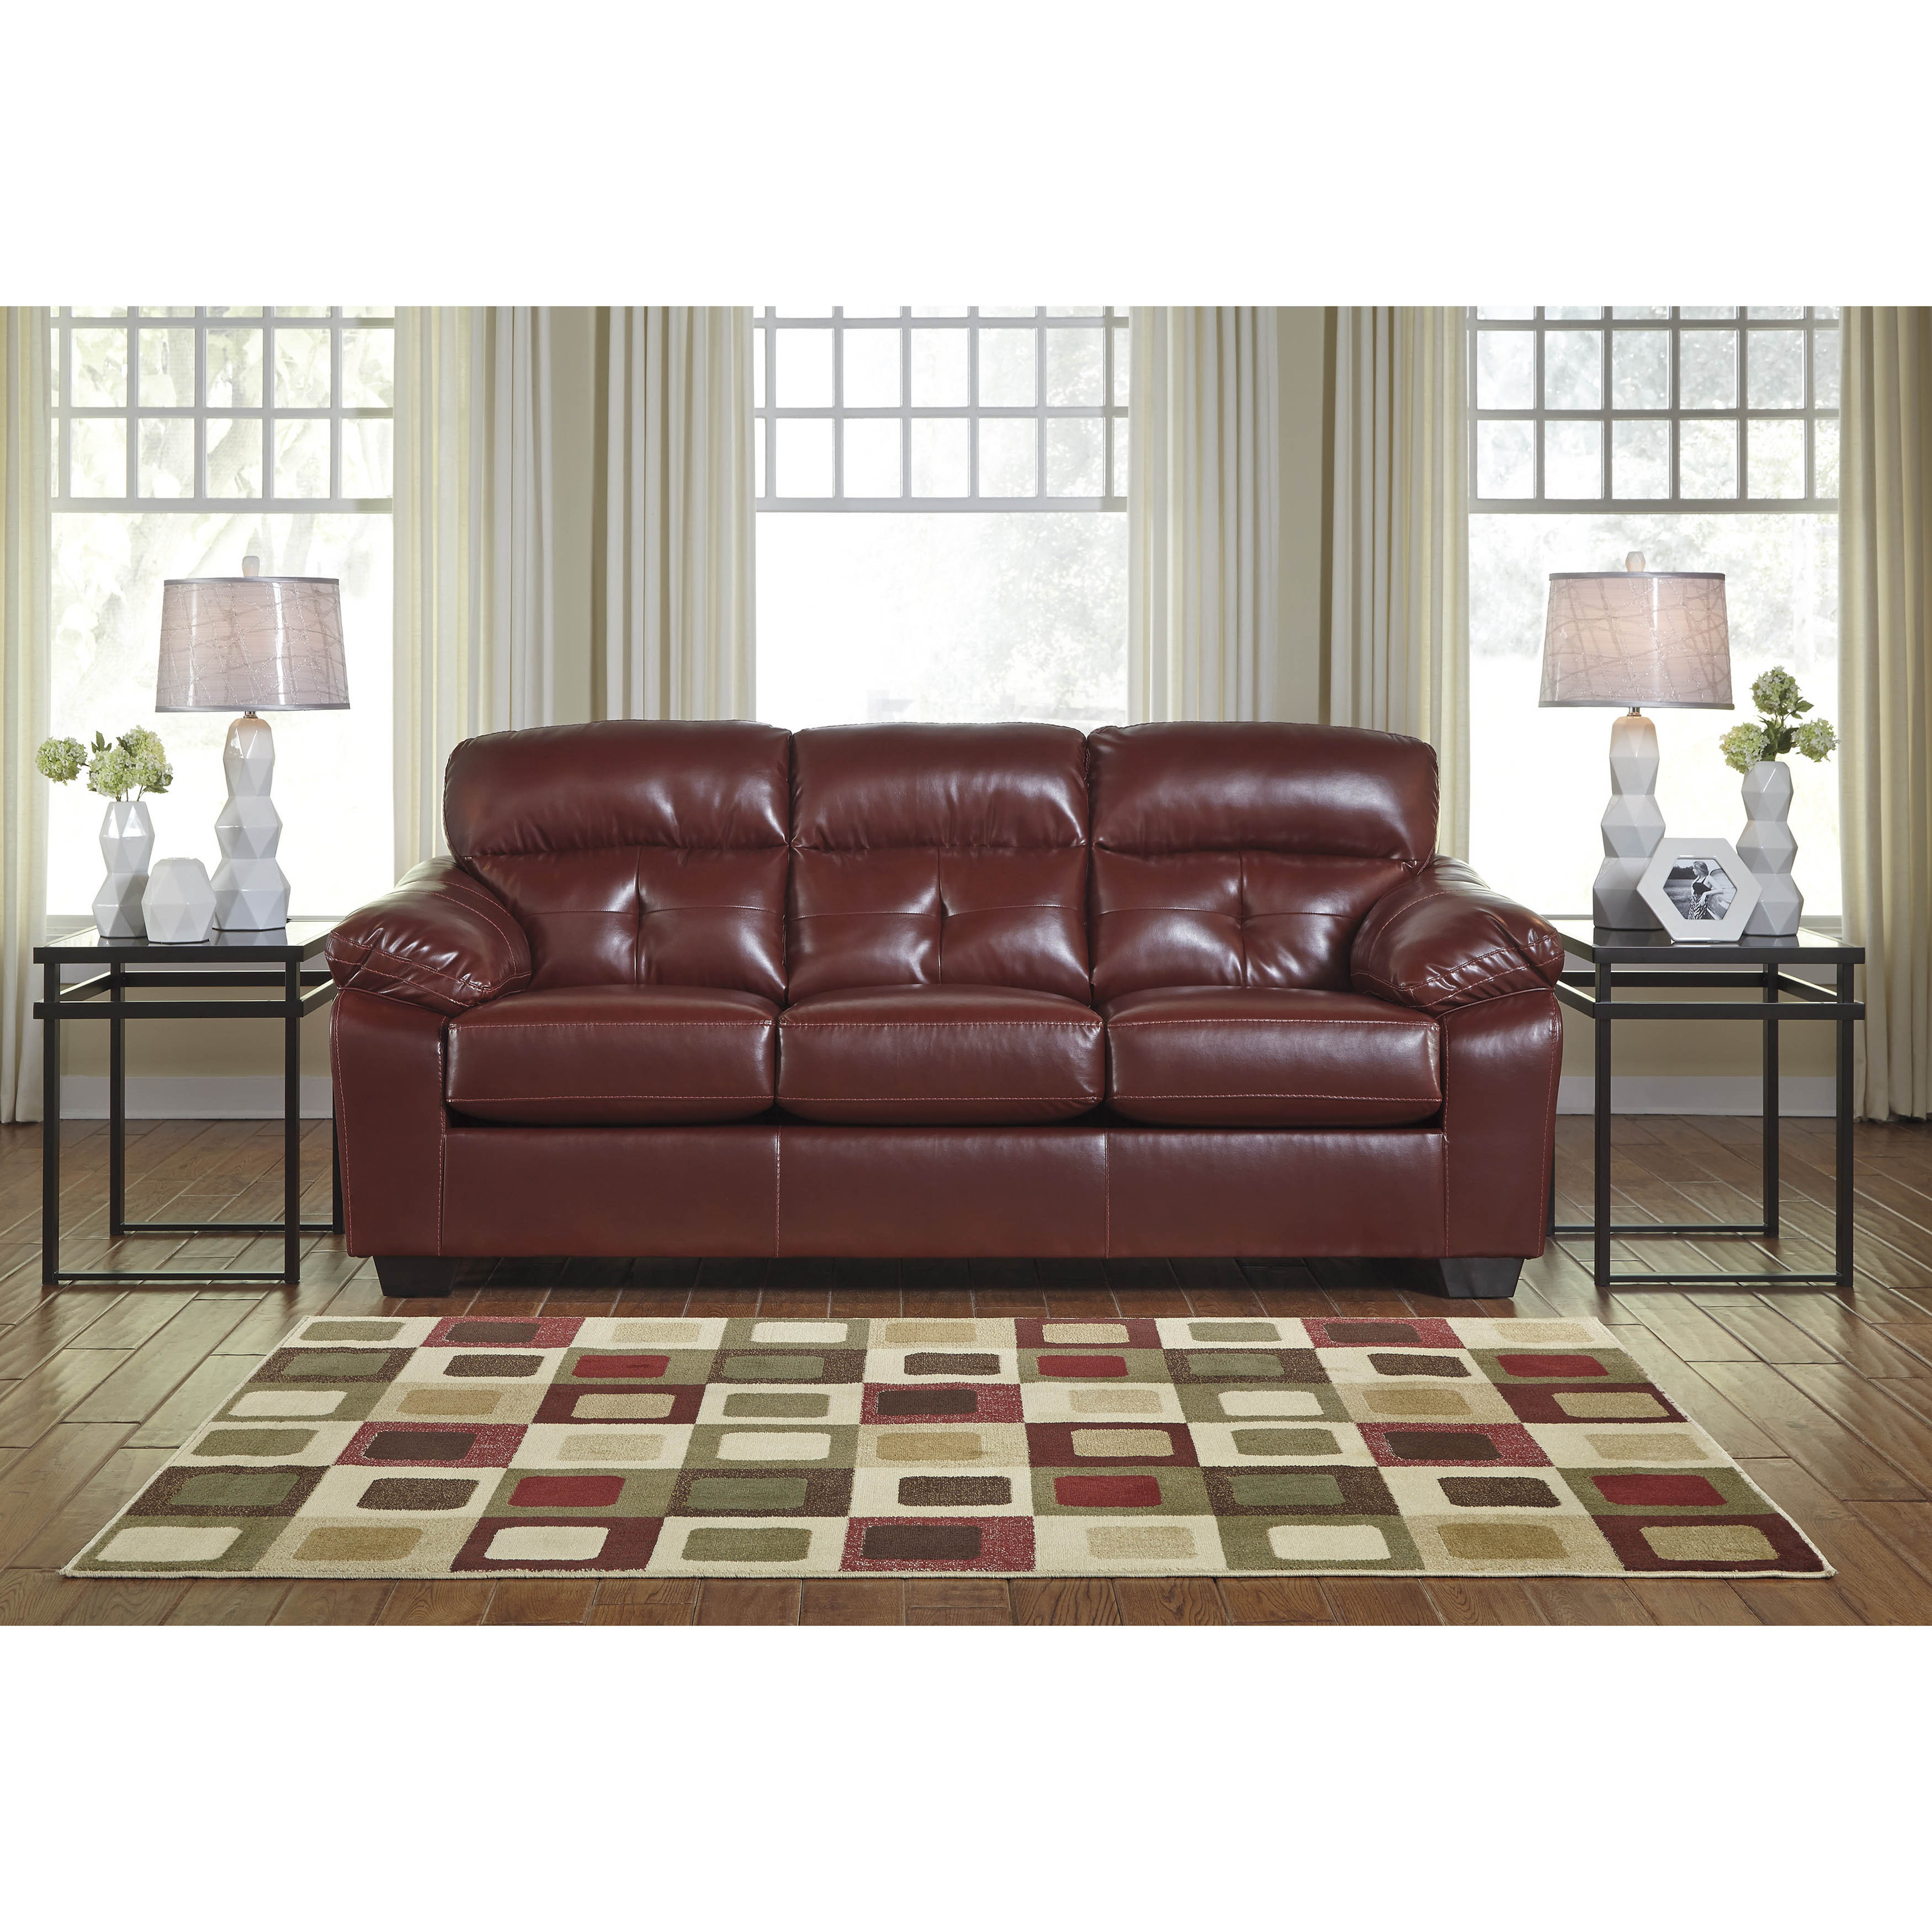 Benchcraft Bastrop DuraBlend Sofa   Free Shipping Today   Overstock    17464536